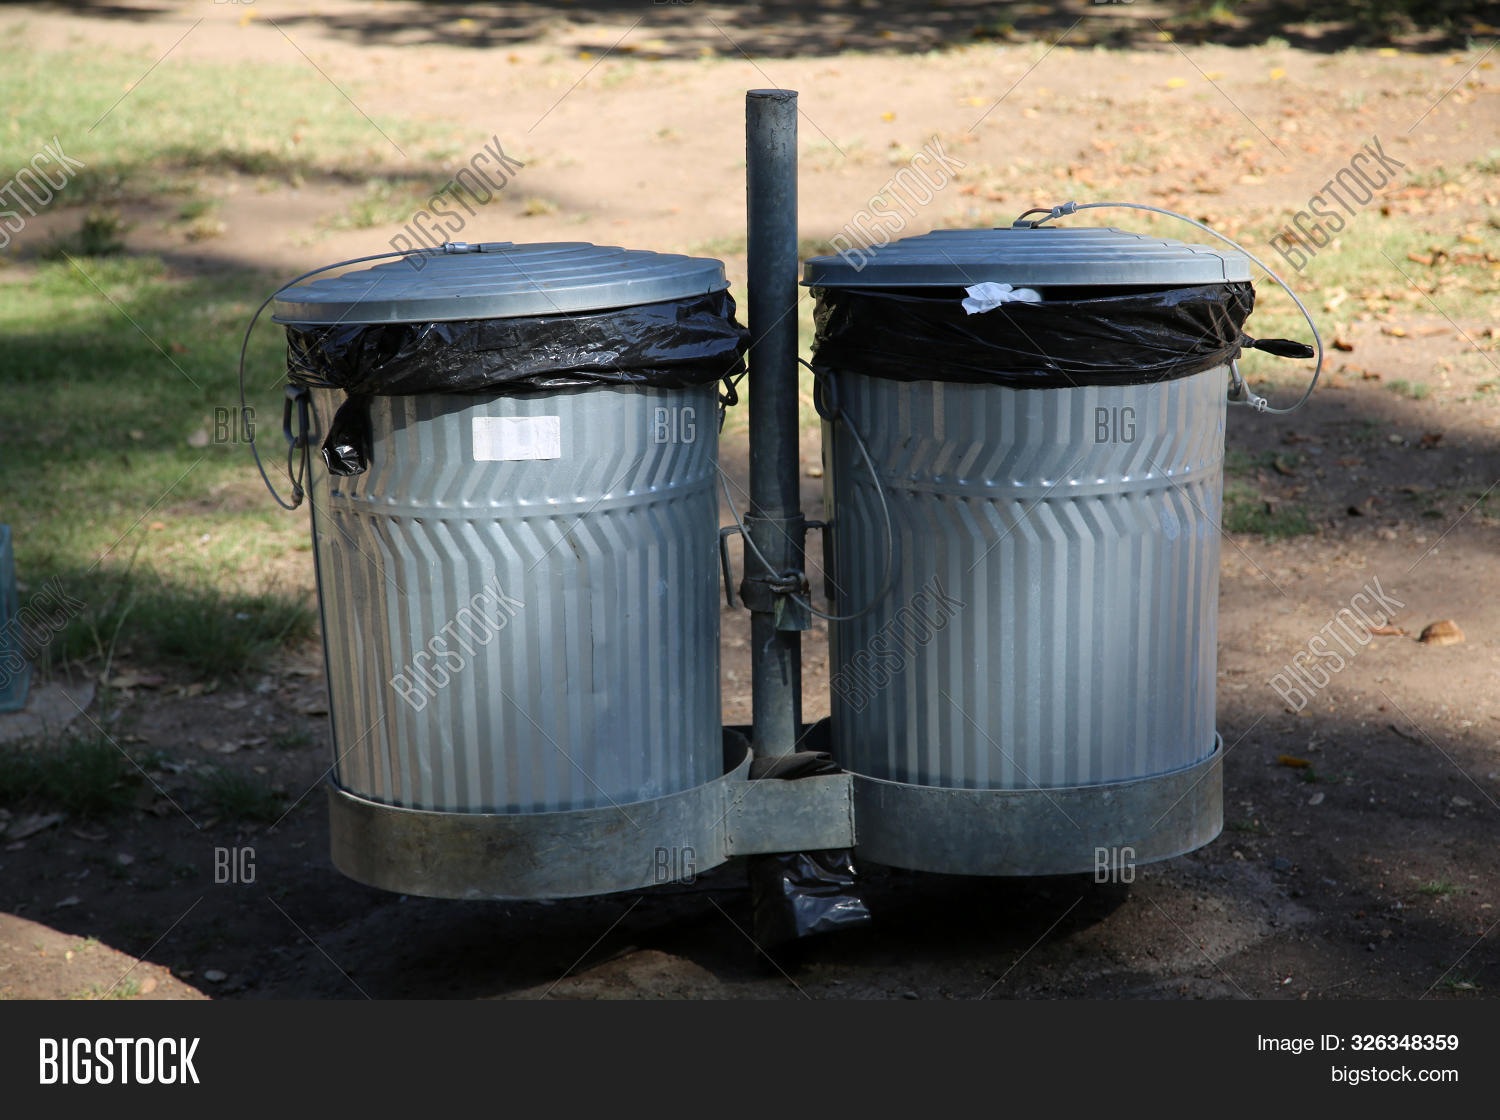 aluminum,basket,bin,bucket,can,clean,conservation,container,discard,disposal,dispose,dump,dumping,dumpster,dustbin,ecological,ecology,empty,environment,environmental,full,garbage,garbage can,industrial,isolated,junk,lid,litter,metal,metallic,municipal,nature,object,outdoor,paper,plastic,pollution,recycle,recycling,refuse,rubbish,silver,steel,trash,trash can,urban,waste,wastebasket,wastepaper